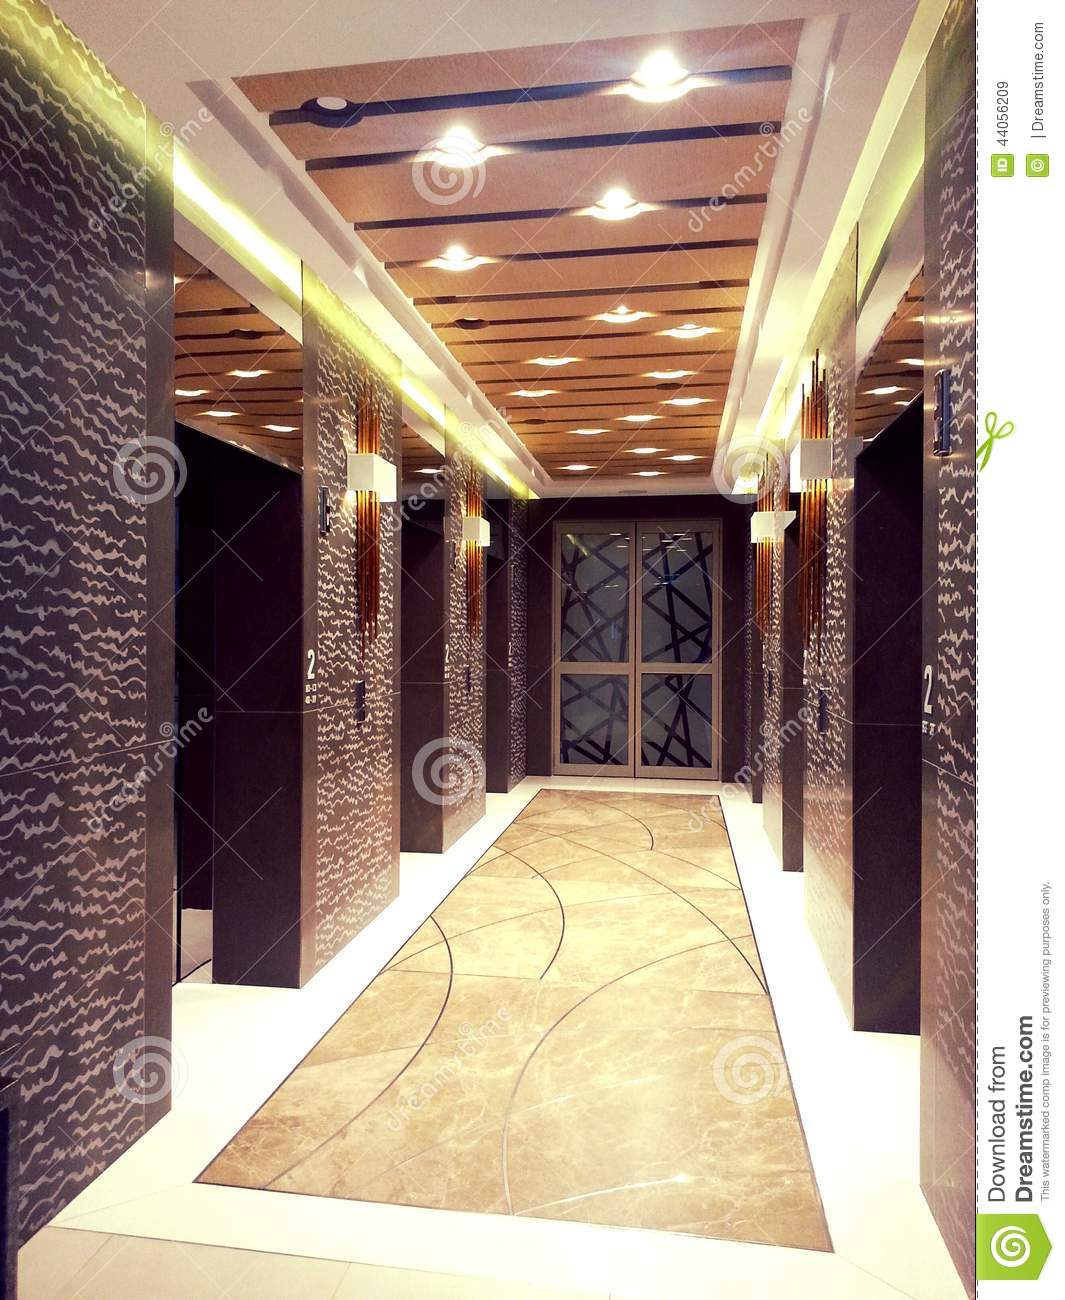 Stunning Staircase And Elevator Design Ideas: Elevator Hallway Stock Image. Image Of Stunning, Lifts